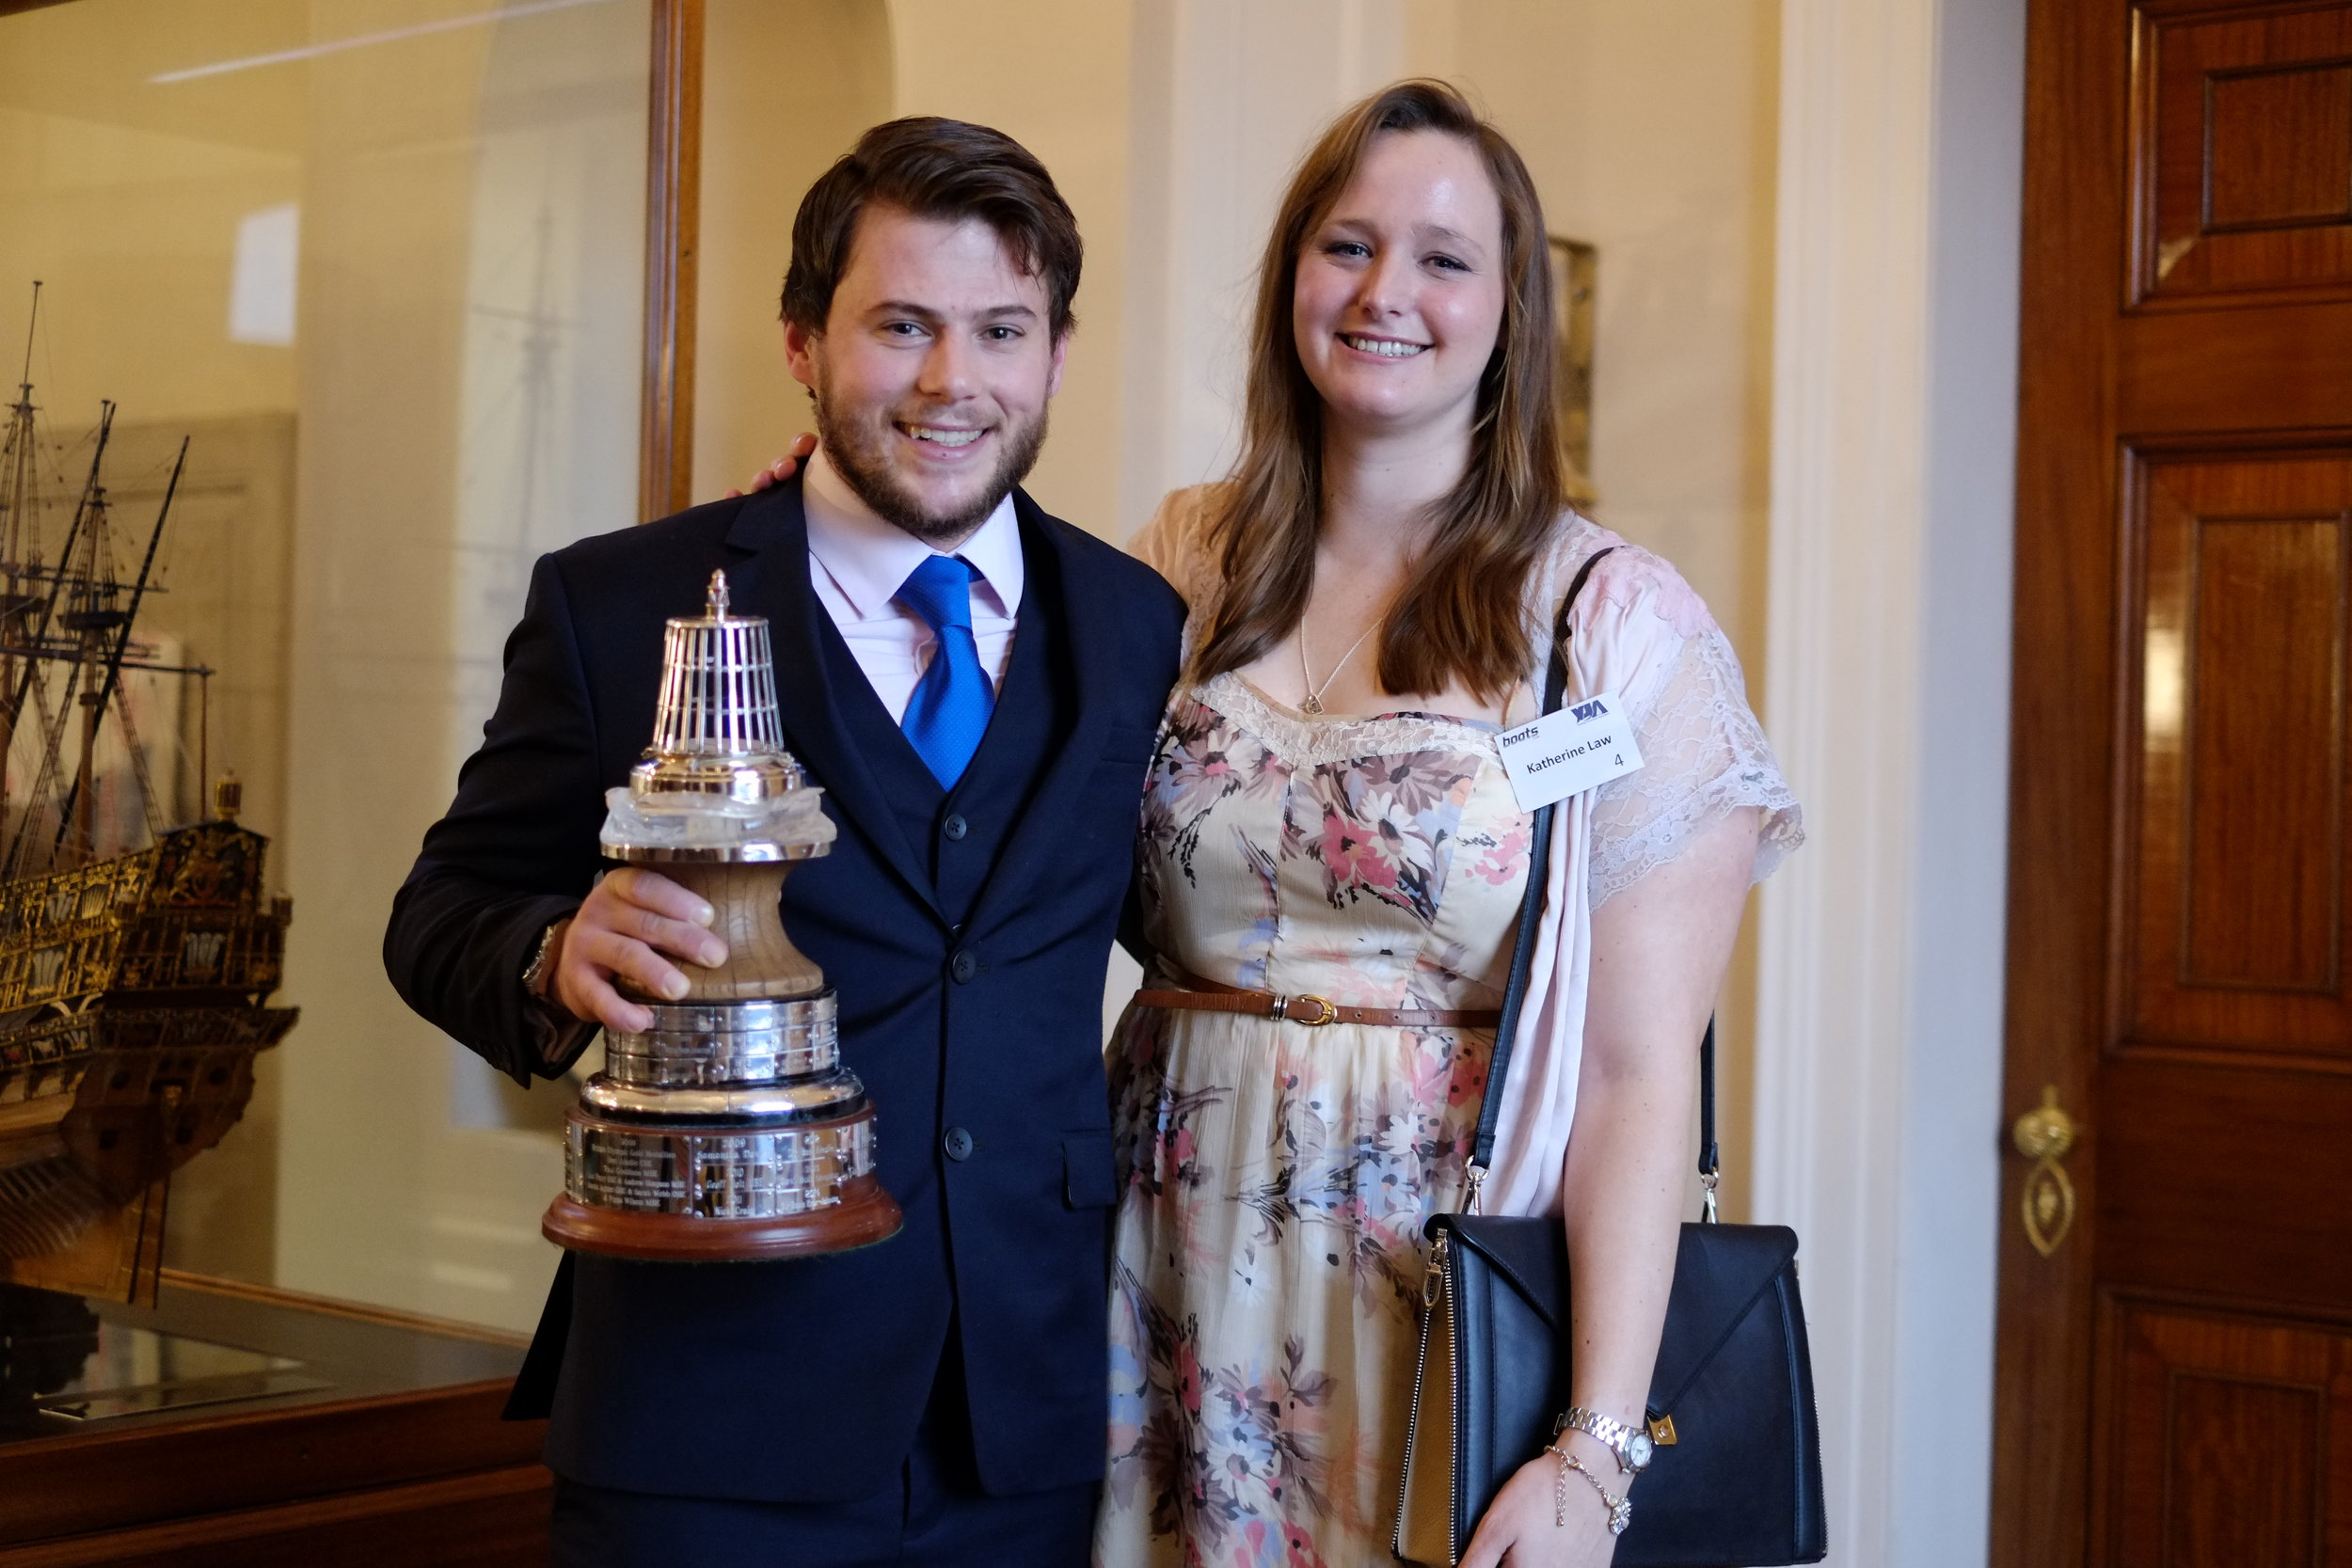 Gavin Reid - Yachtsman of the Year 2017 with his girlfriend Katherine Law, who filmed the rescue. They met on the race.